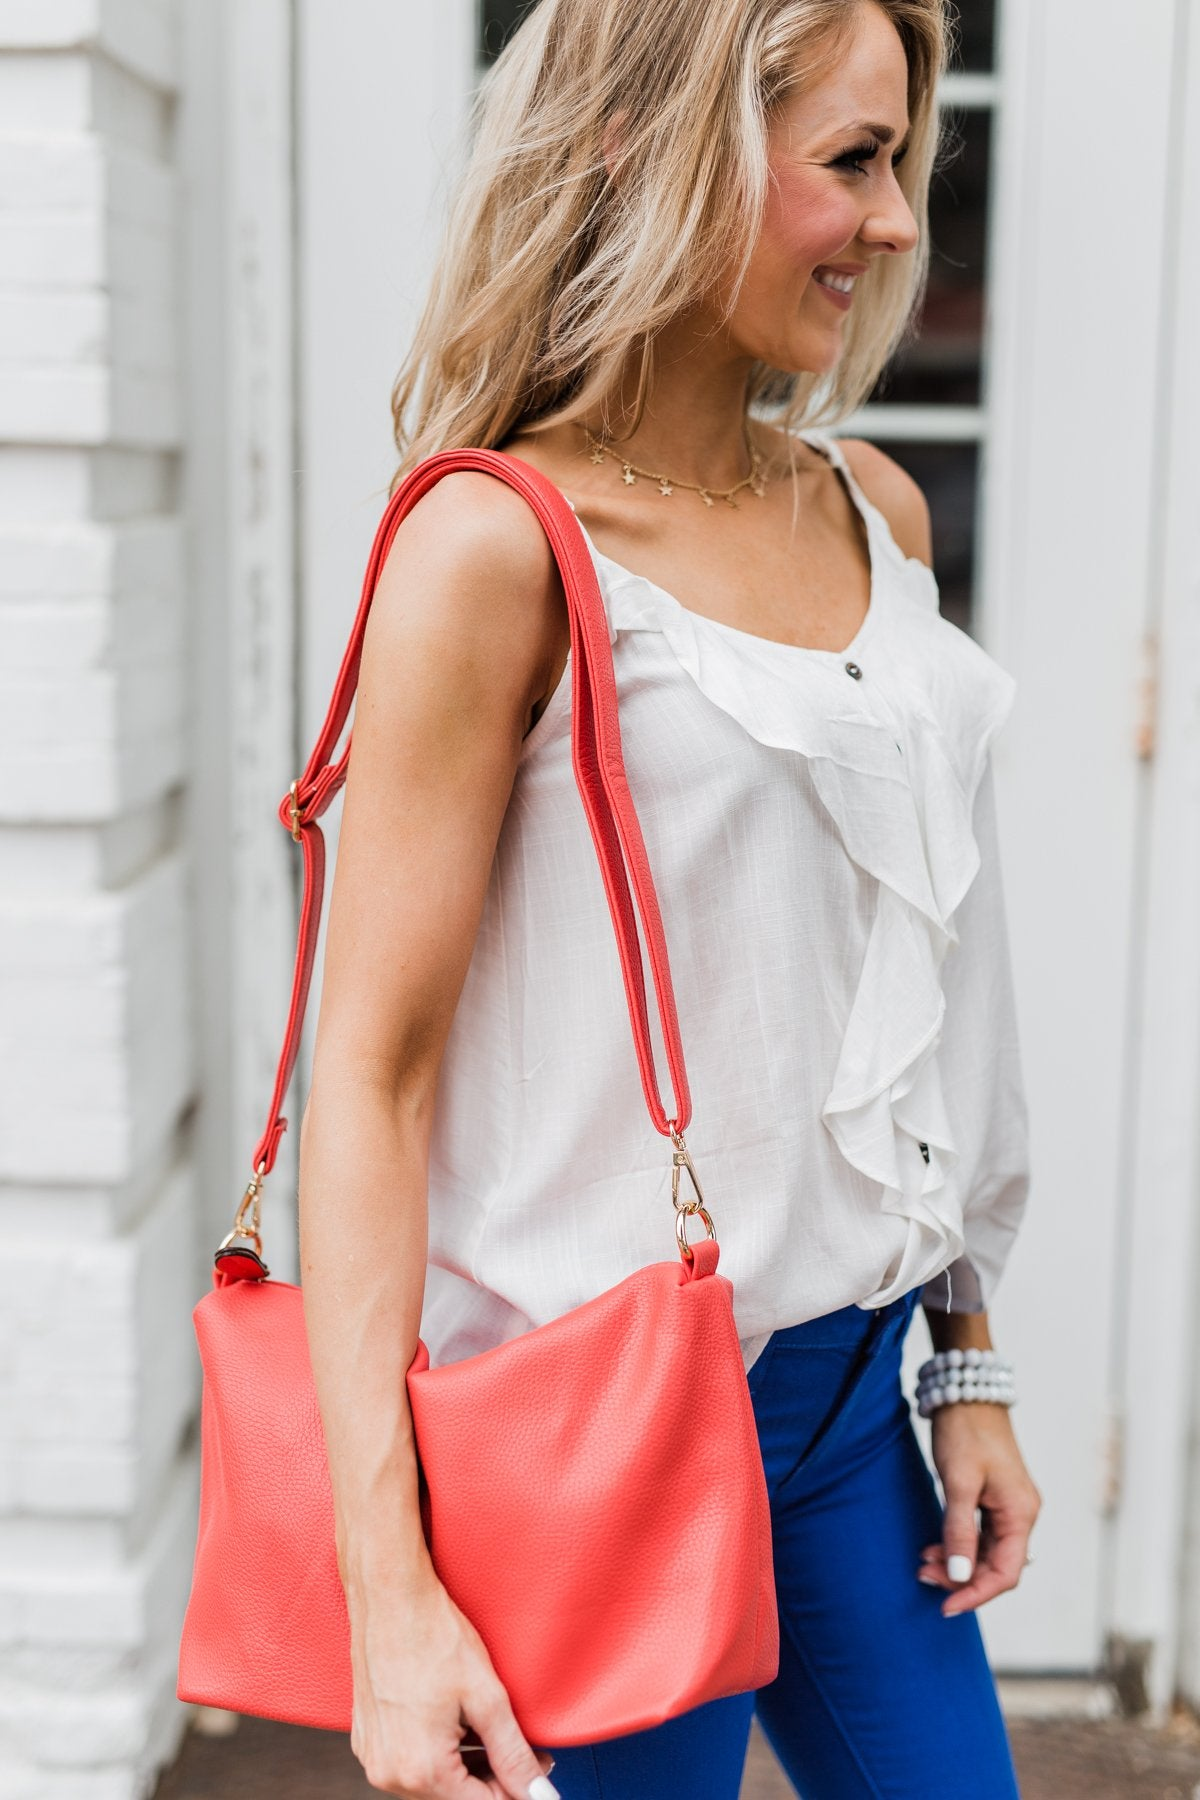 Bring on the Day Zipper Purse- Vibrant Coral